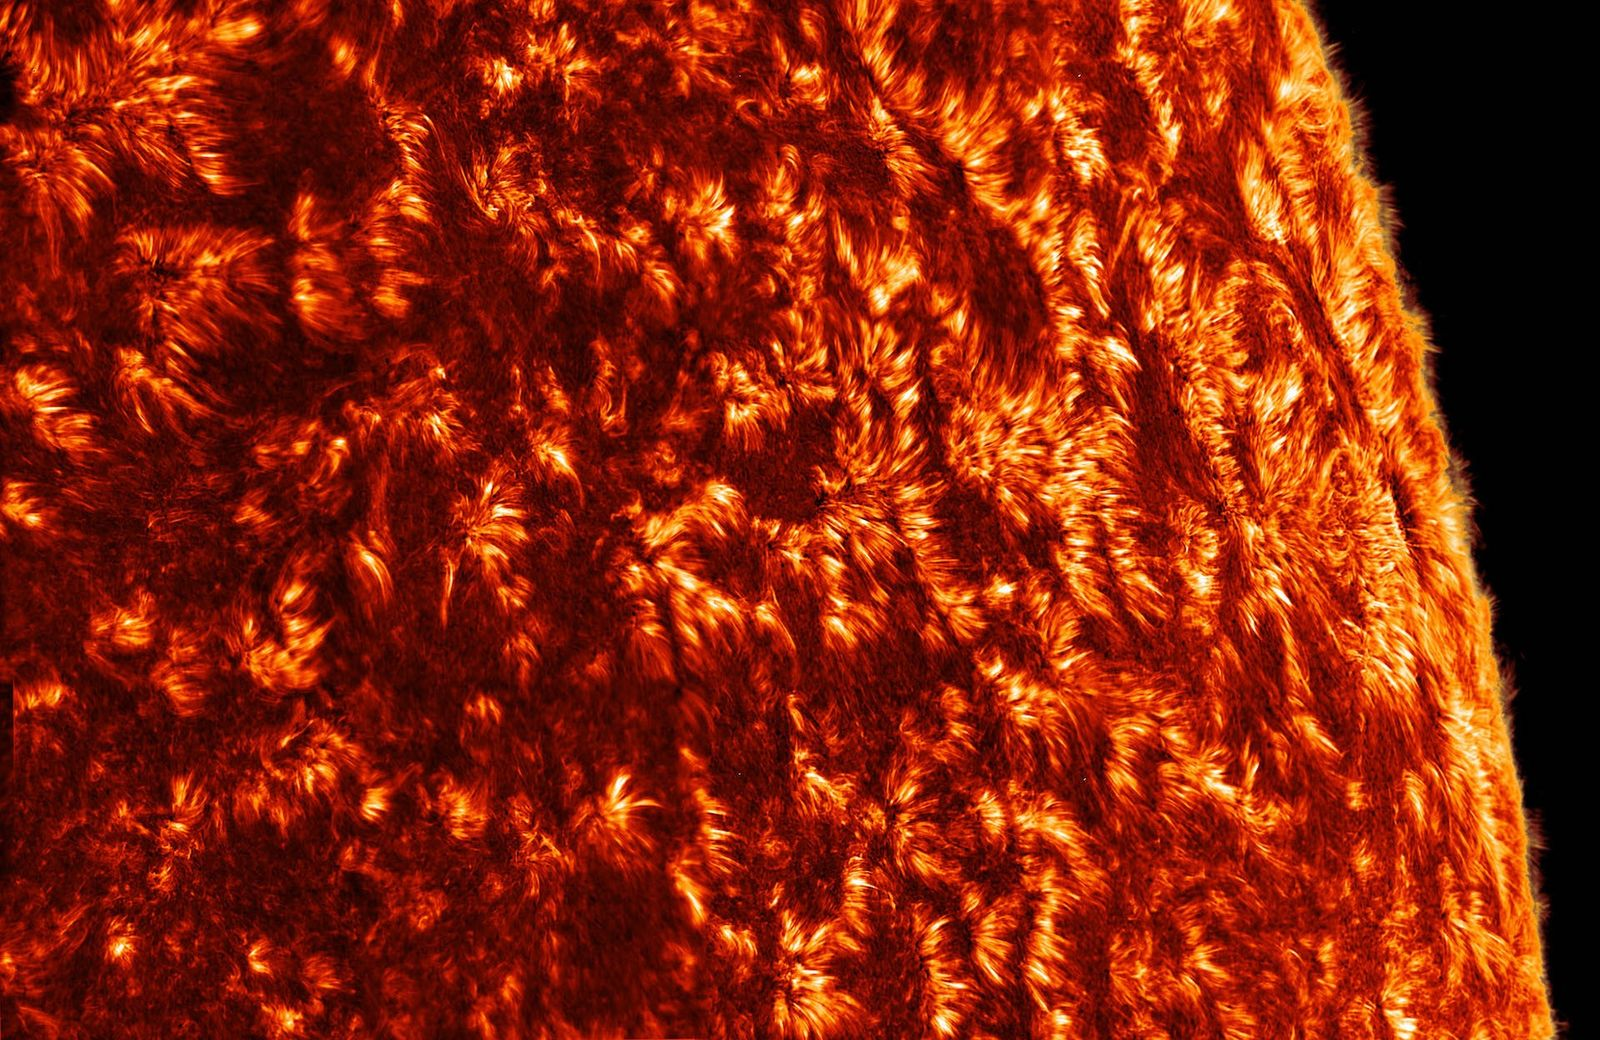 A view of the solar chromosphere, or the layer of the Sun's atmosphere. The grass-like features ...